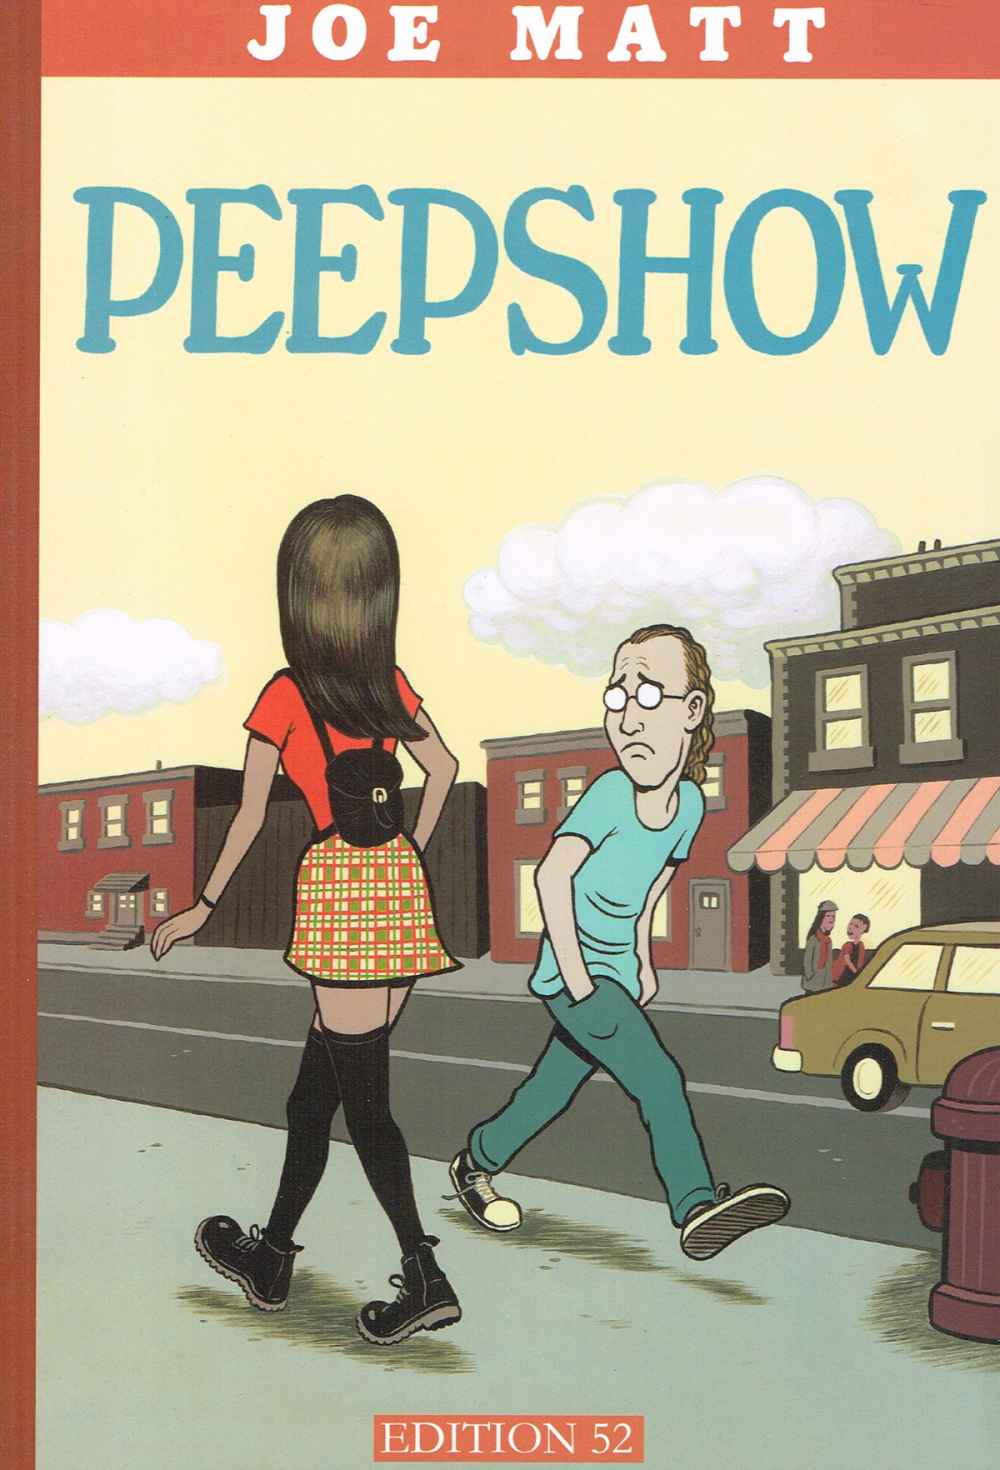 Joe Matt: Peepshow